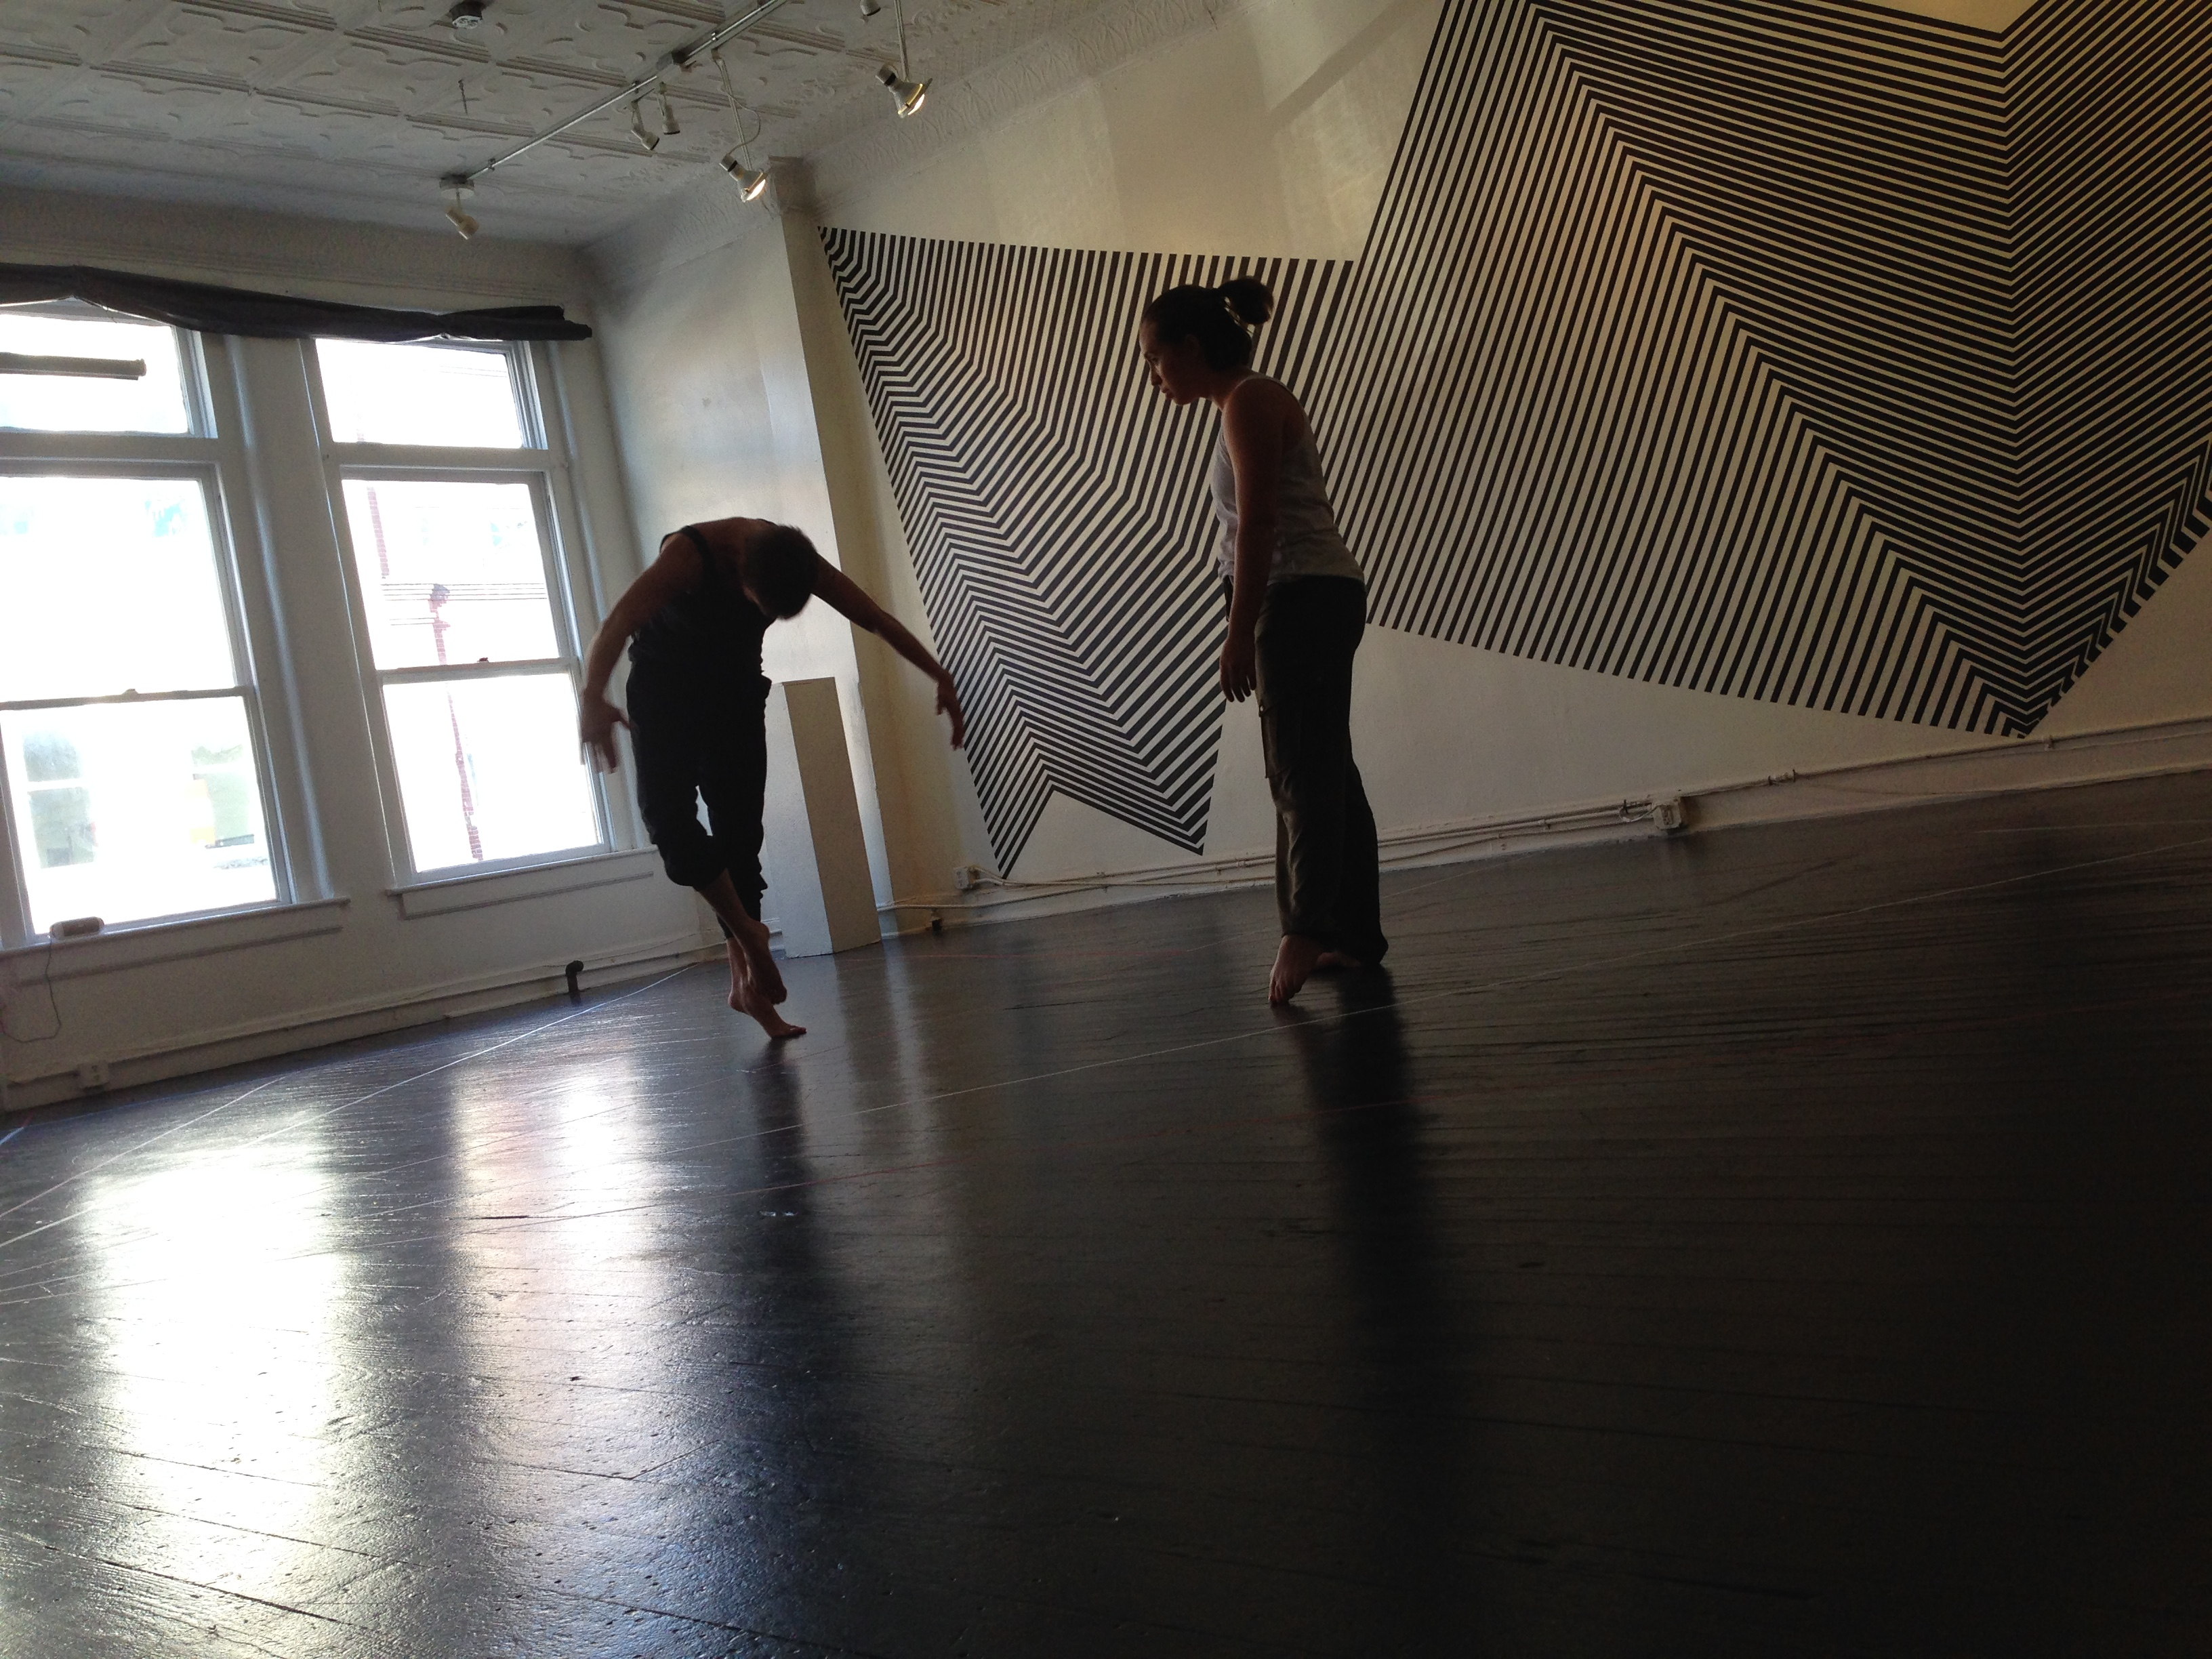 KIN performance at The Carrack, a collaboration between Justin Tornow and Heather Gordon